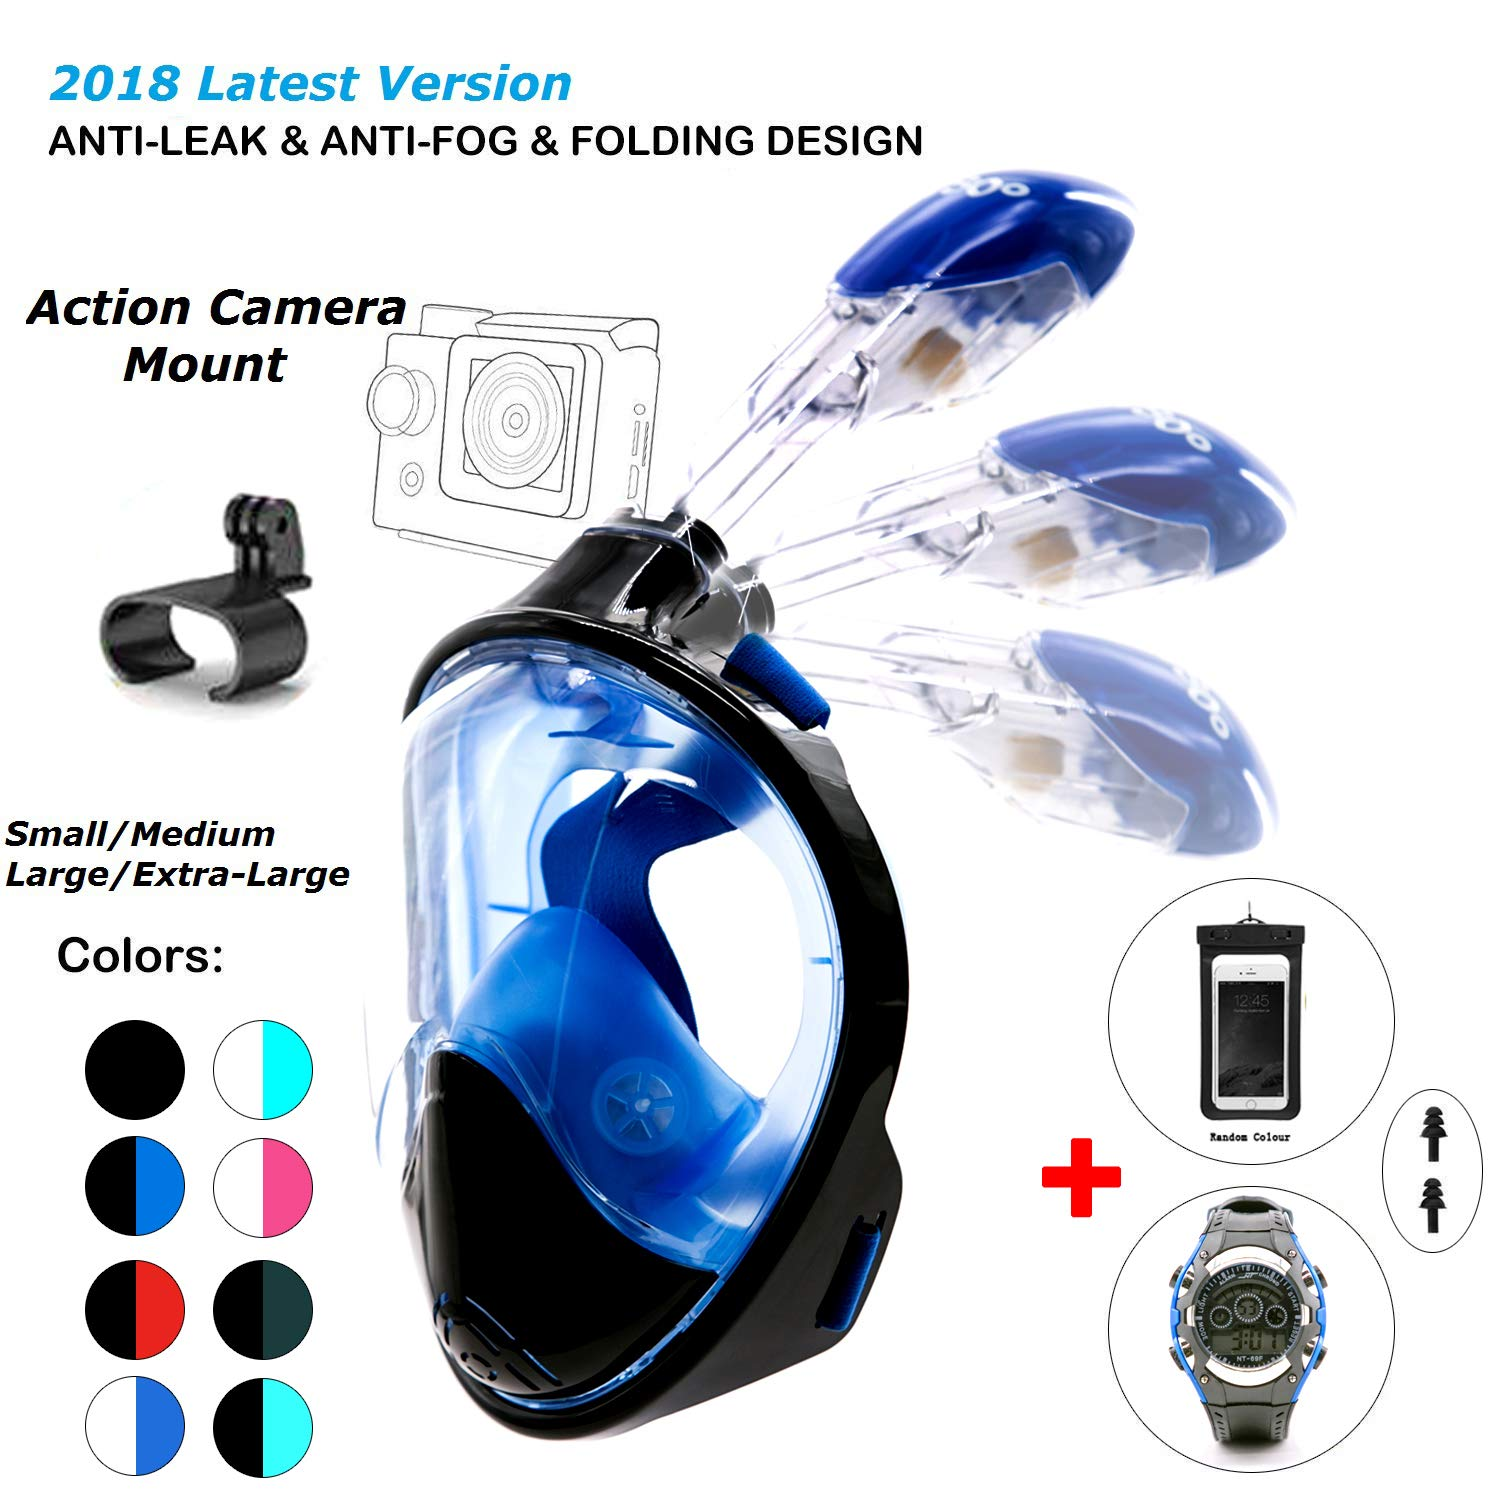 180° Snorkel Mask View for Adults and Youth. Full Face Free Breathing Folding Design.[Free Bonuses] Cell Phone Universal Waterproof Case and 30m Waterproof Watch (Black&Blue, Small/Medium)